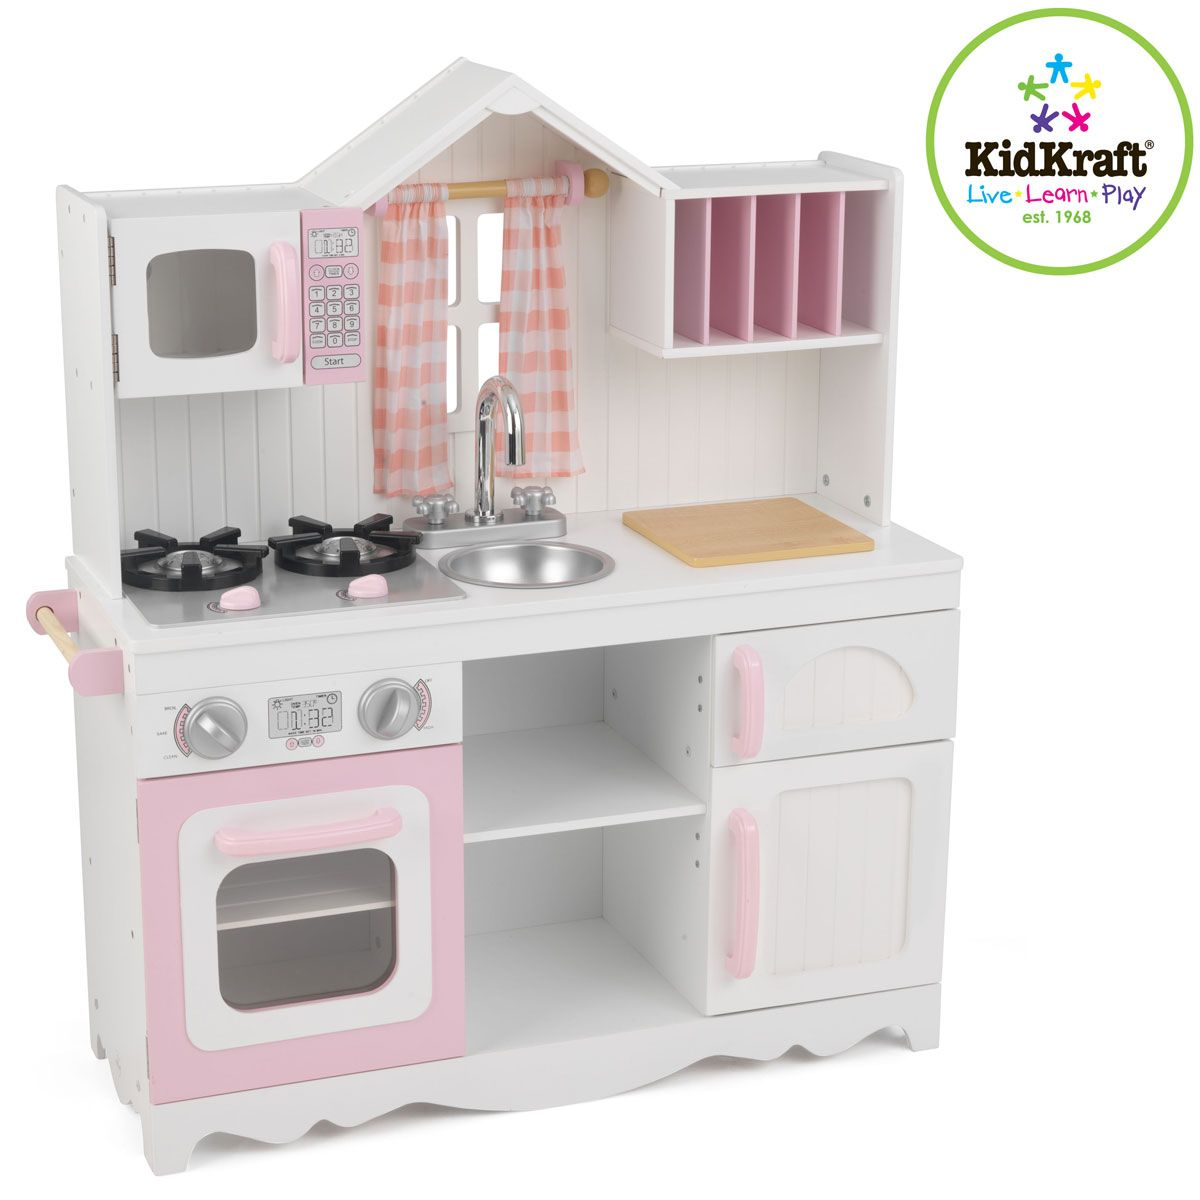 Kidkraft Modern Country Kitchen 53222 Pink Wooden Retro Toy Wood Play Hob Oven